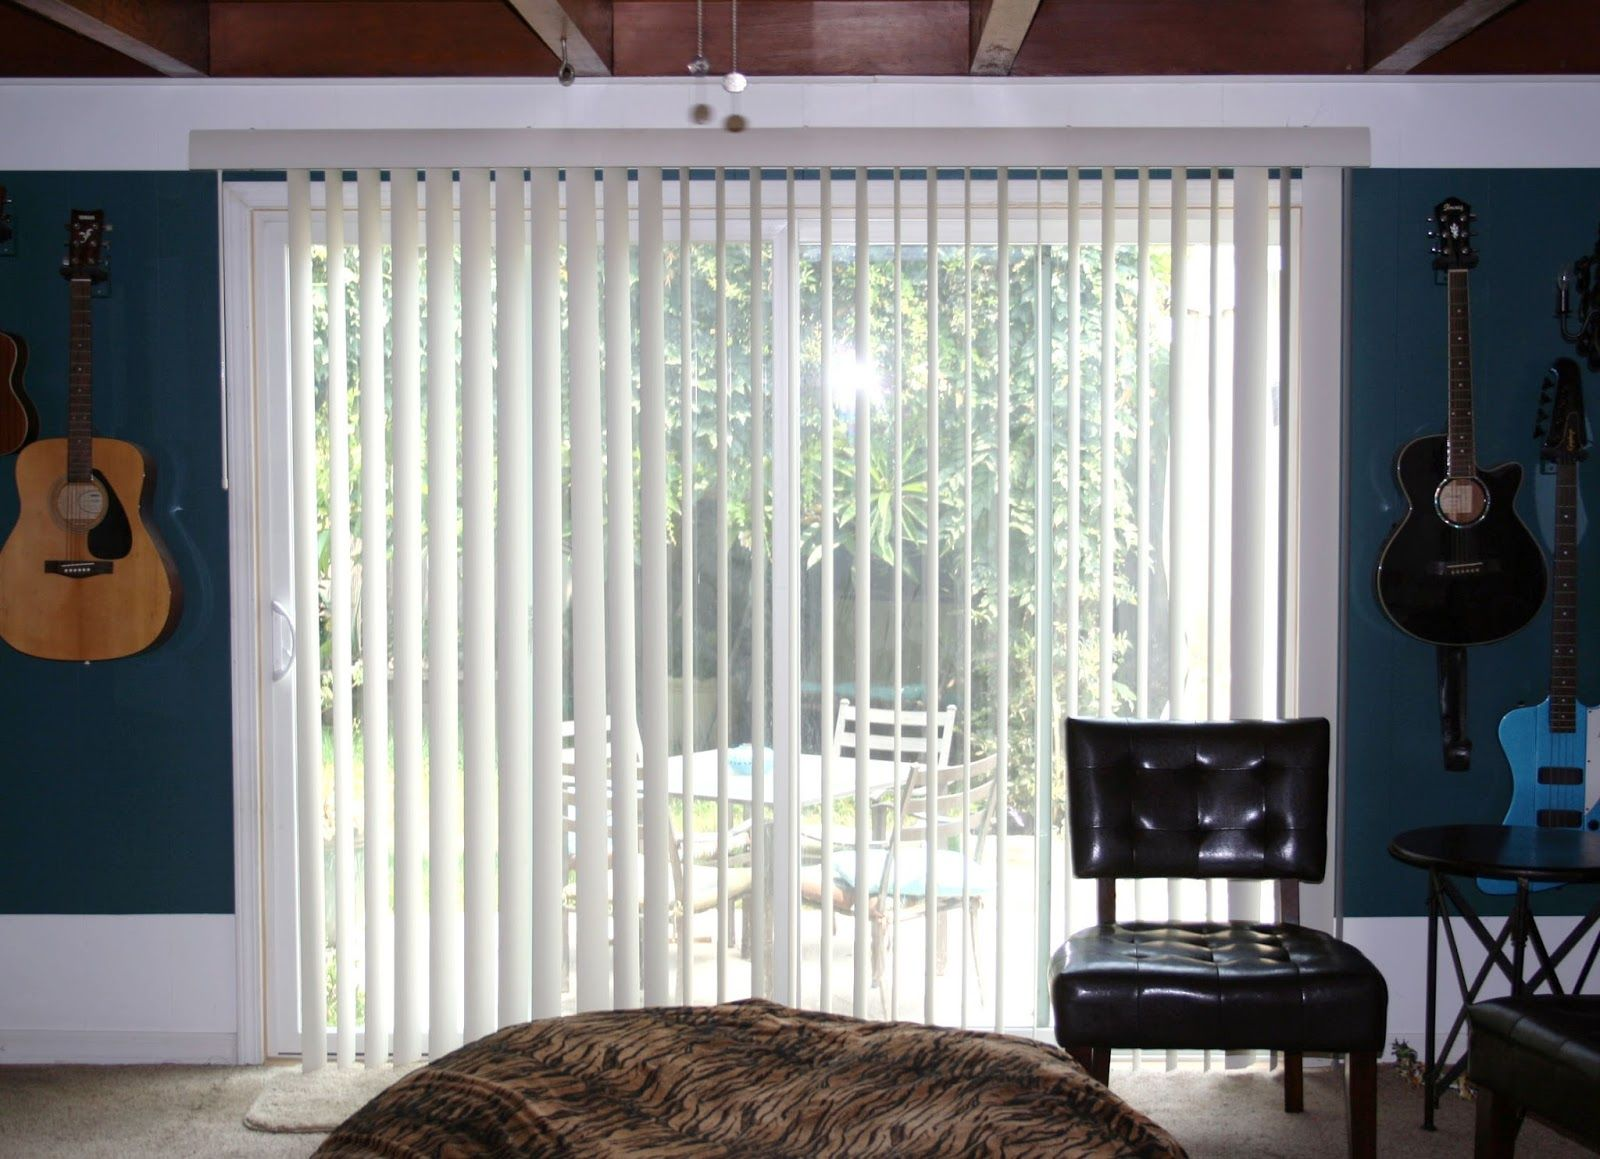 Hanging Curtains On A Vertical Blind Track Creating A Fabric Valance